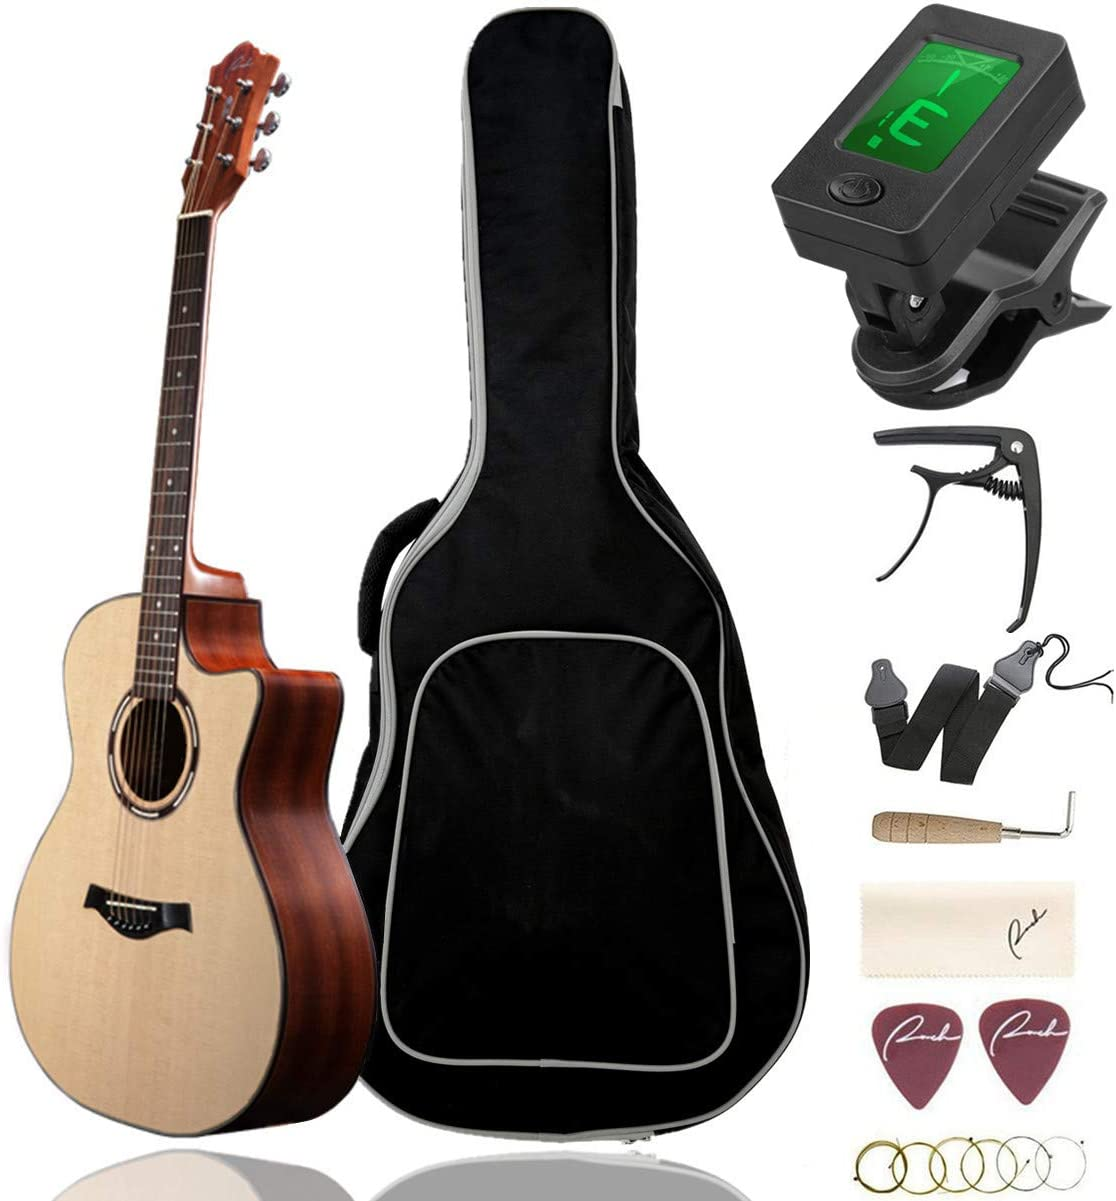 "Beginner Acoustic Guitar Ranch 41"" Full Size Solid Wood Cutaway Beginners Steel String Guitars Kit Bundle with Gig Bag/Tuner/Capo/Strings/Strap/Picks Set Starter Pack for Adults (Grand Auditorium)"